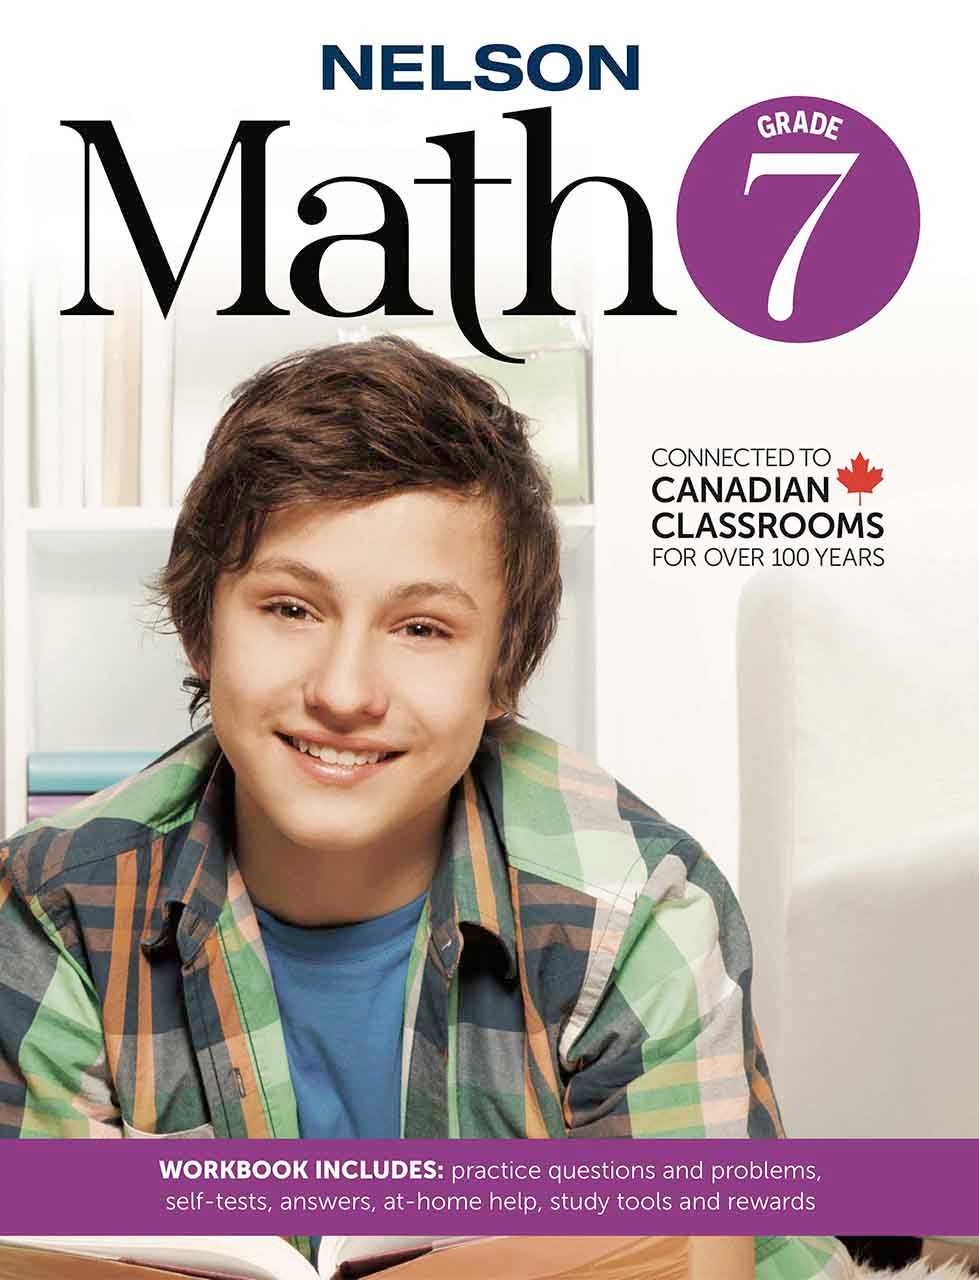 Nelson Math 7 | Grade 7 Math Workbook for Practicing Math at Home